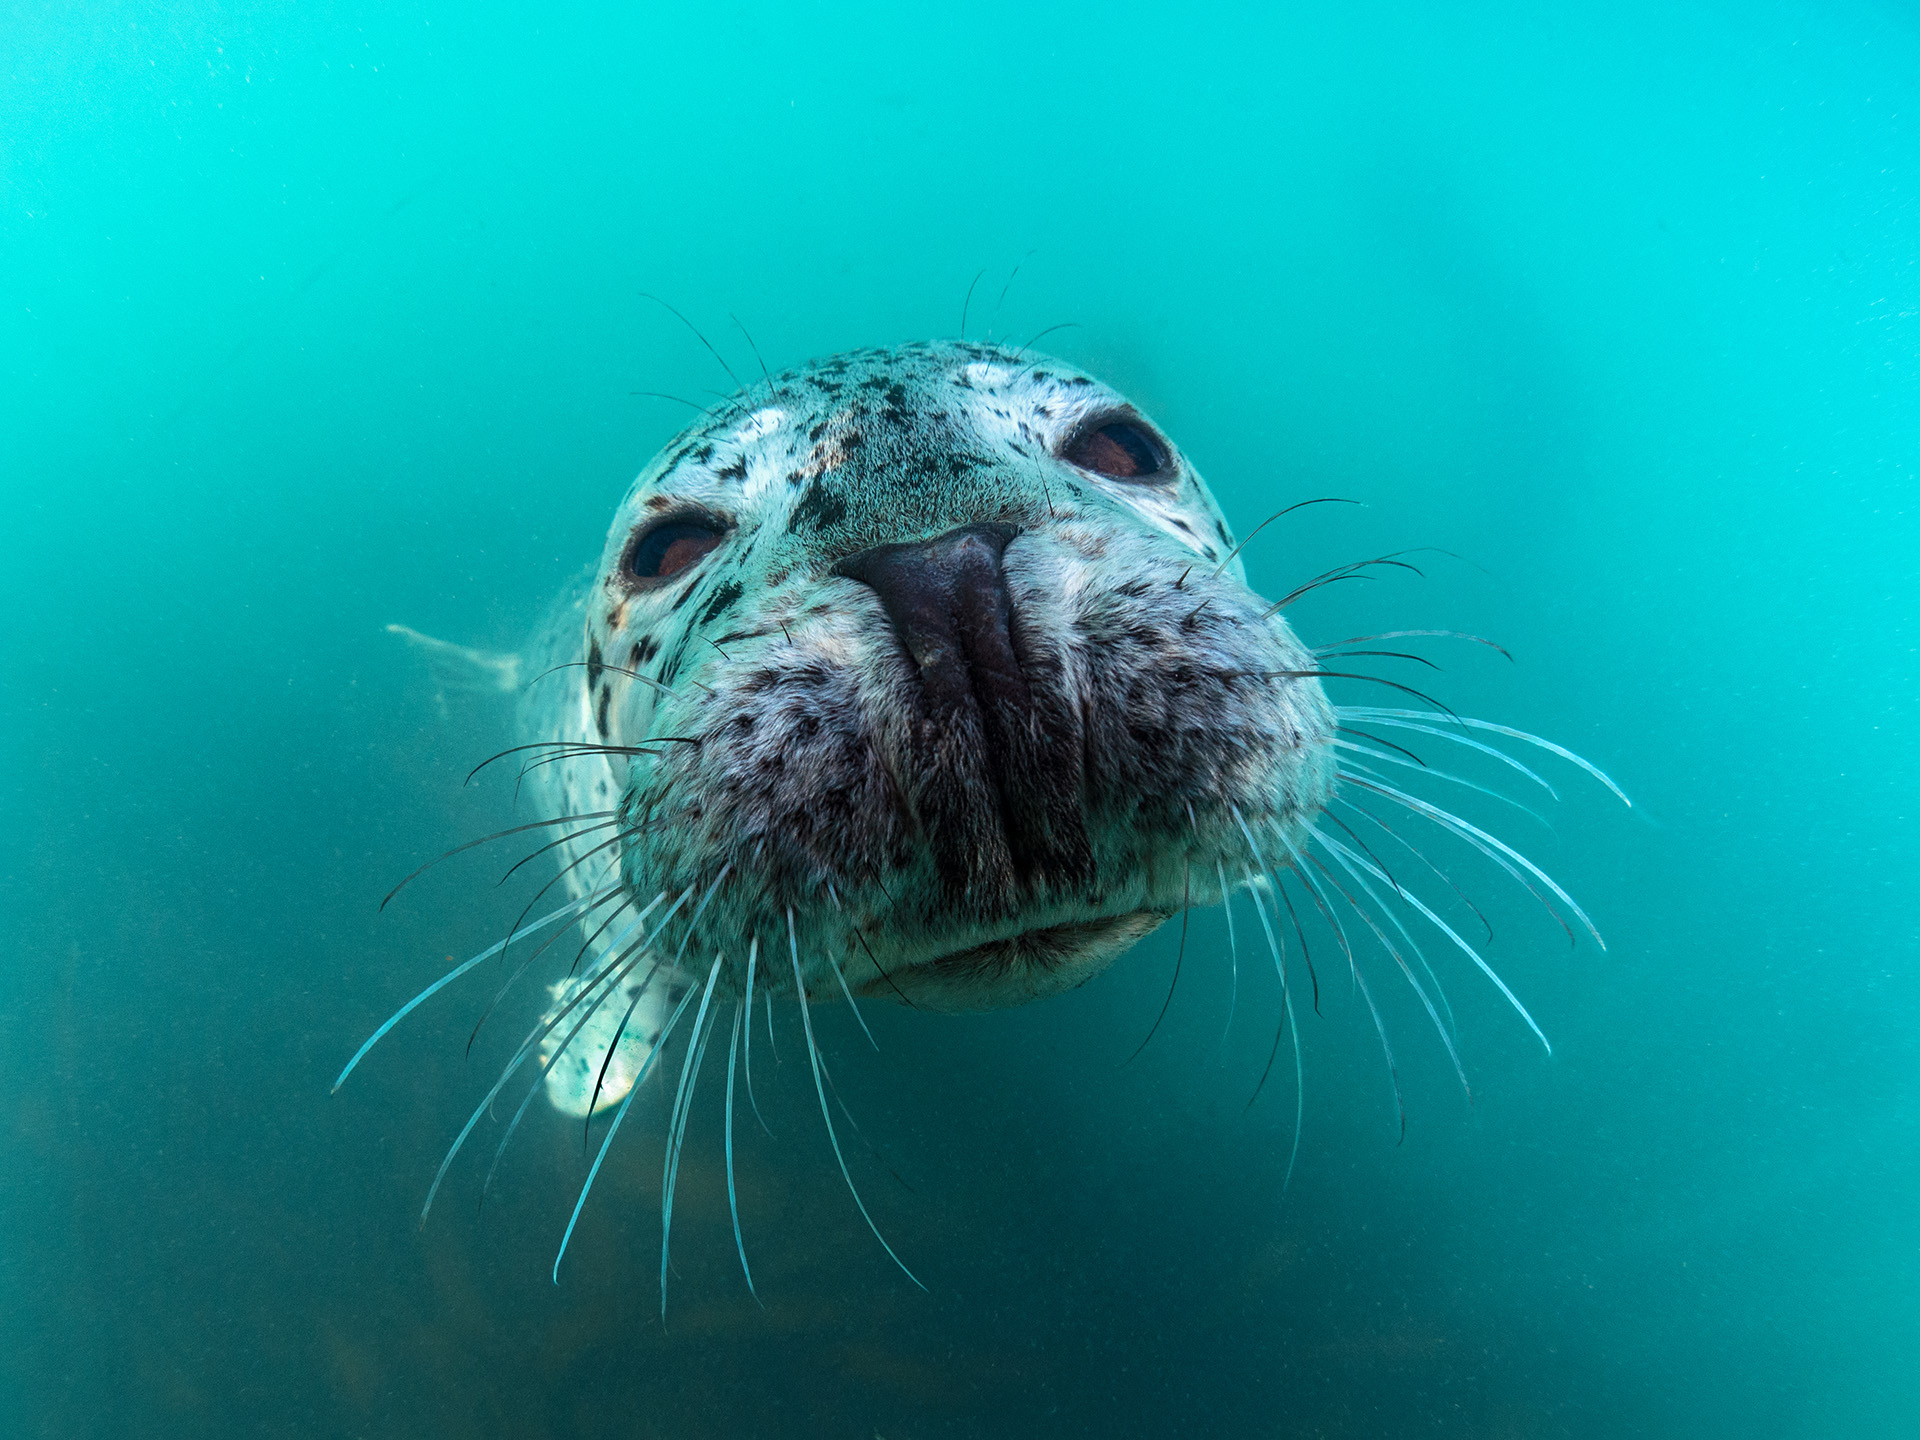 Portrait of a seal